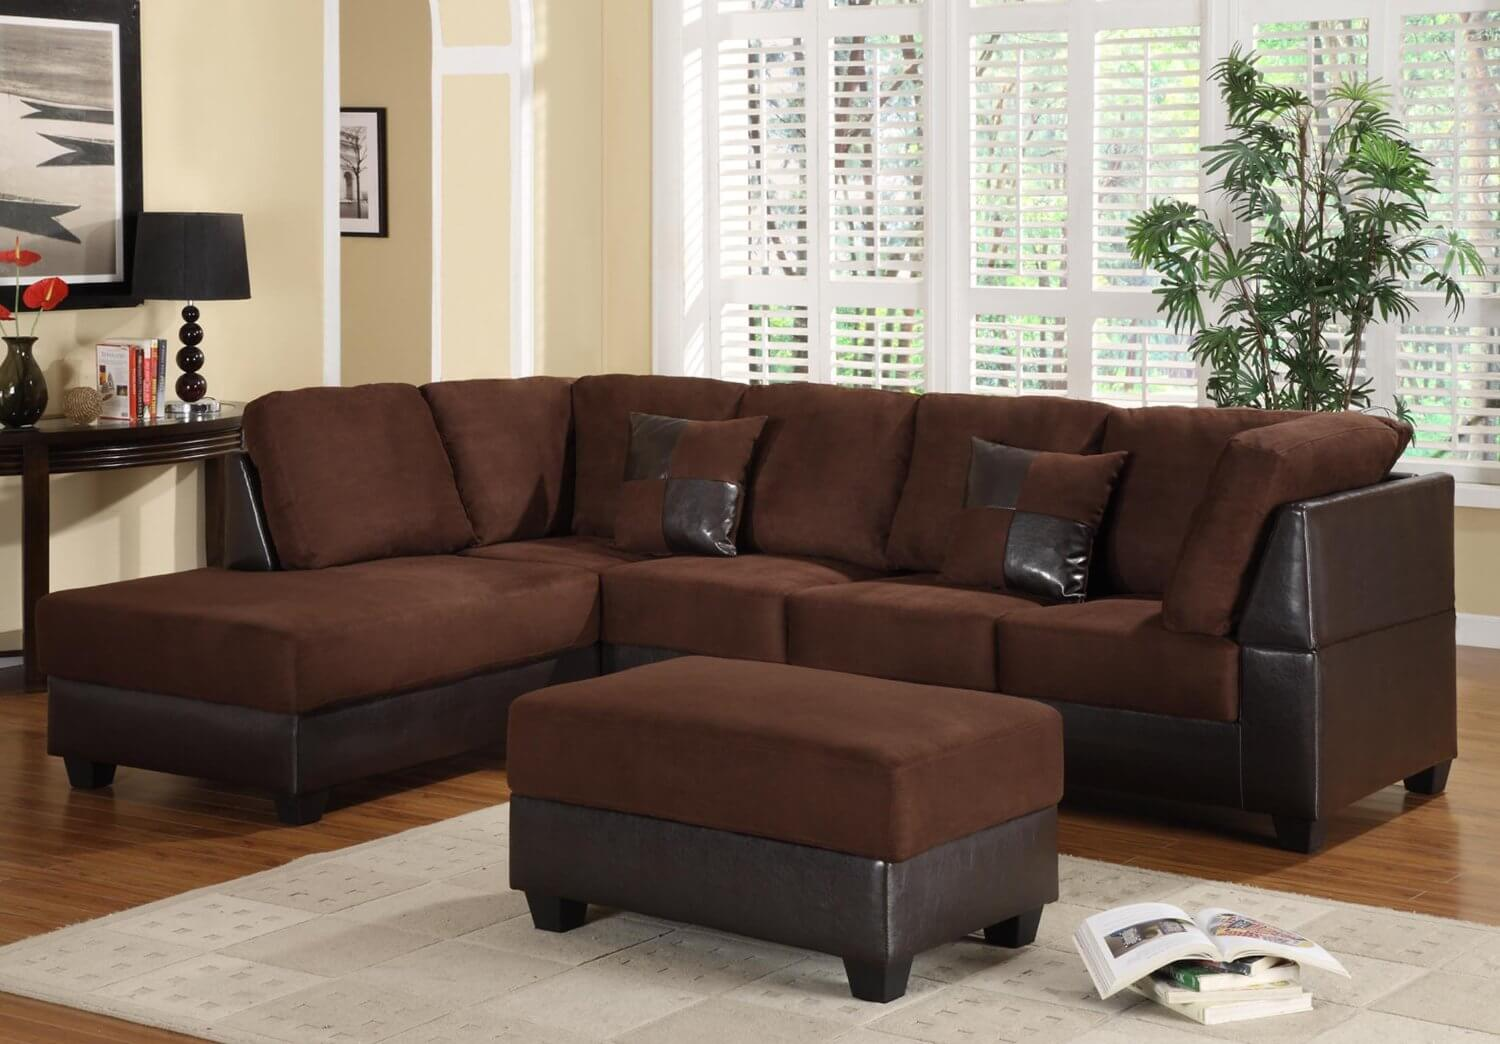 40 cheap sectional sofas under 500